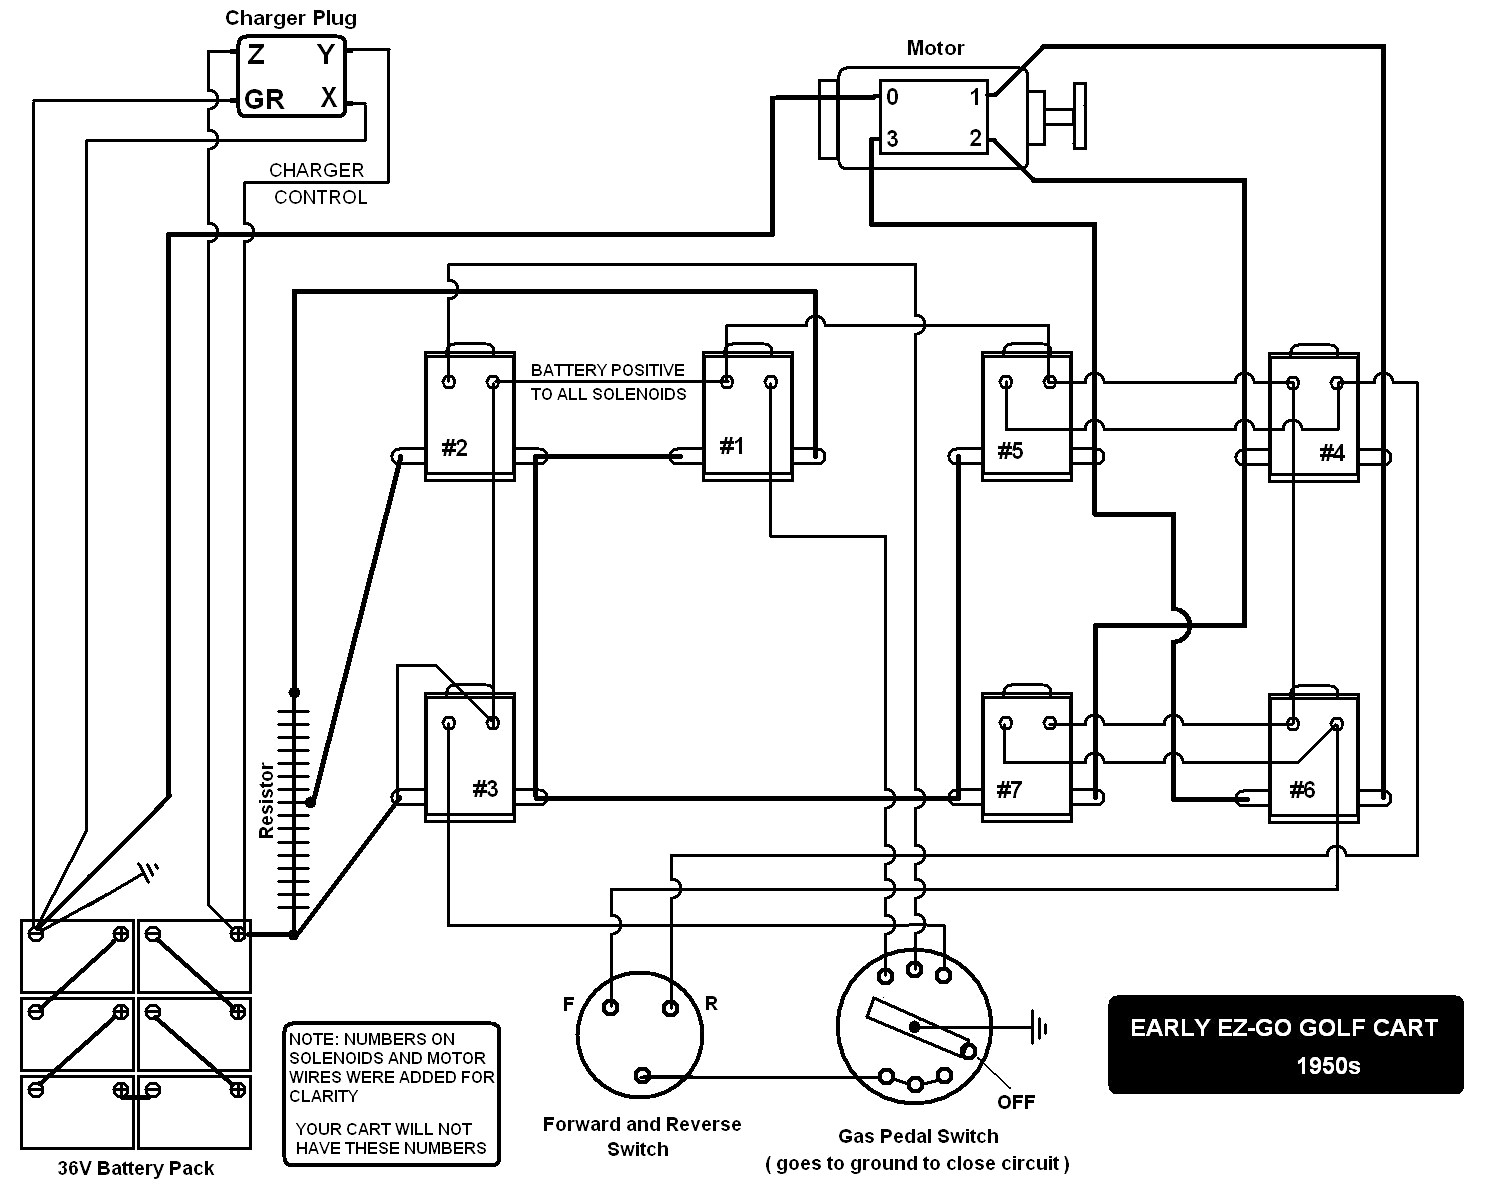 wiring diagram forward single phase motor wiring diagram forward reverse